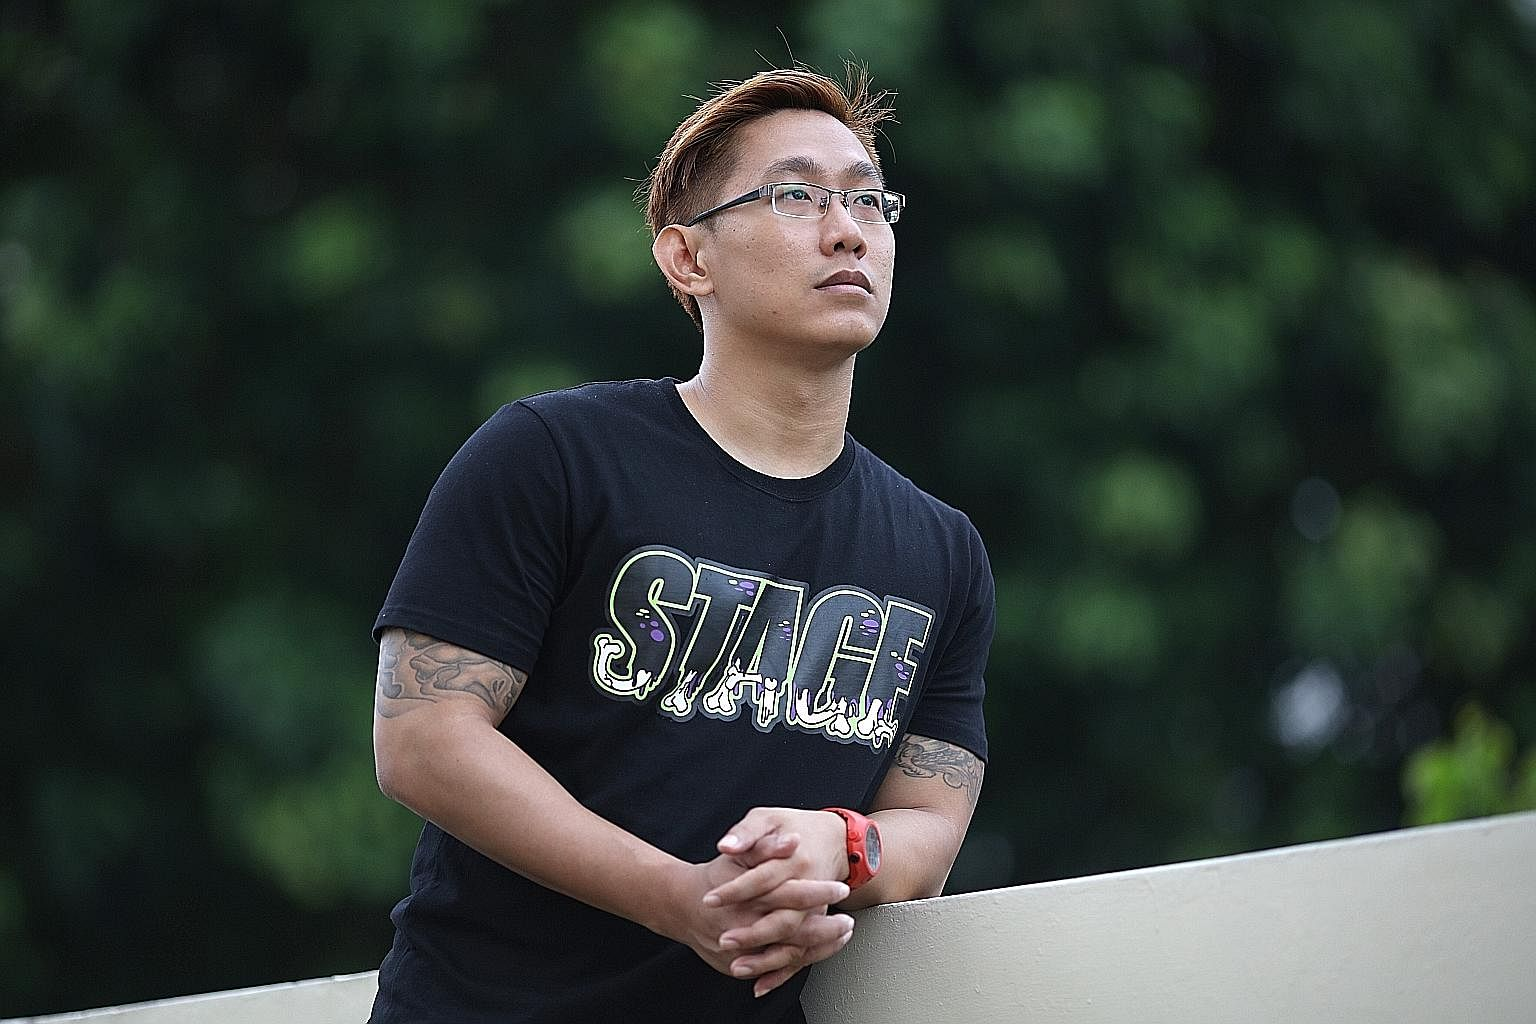 Mr Swee started a tuition programme for young people in Taman Jurong, He rushes from classes at NTU twice a week to give free mathematics tuition. In addition to giving tuition, Mr Swee organises activities to keep young people away from bad influenc